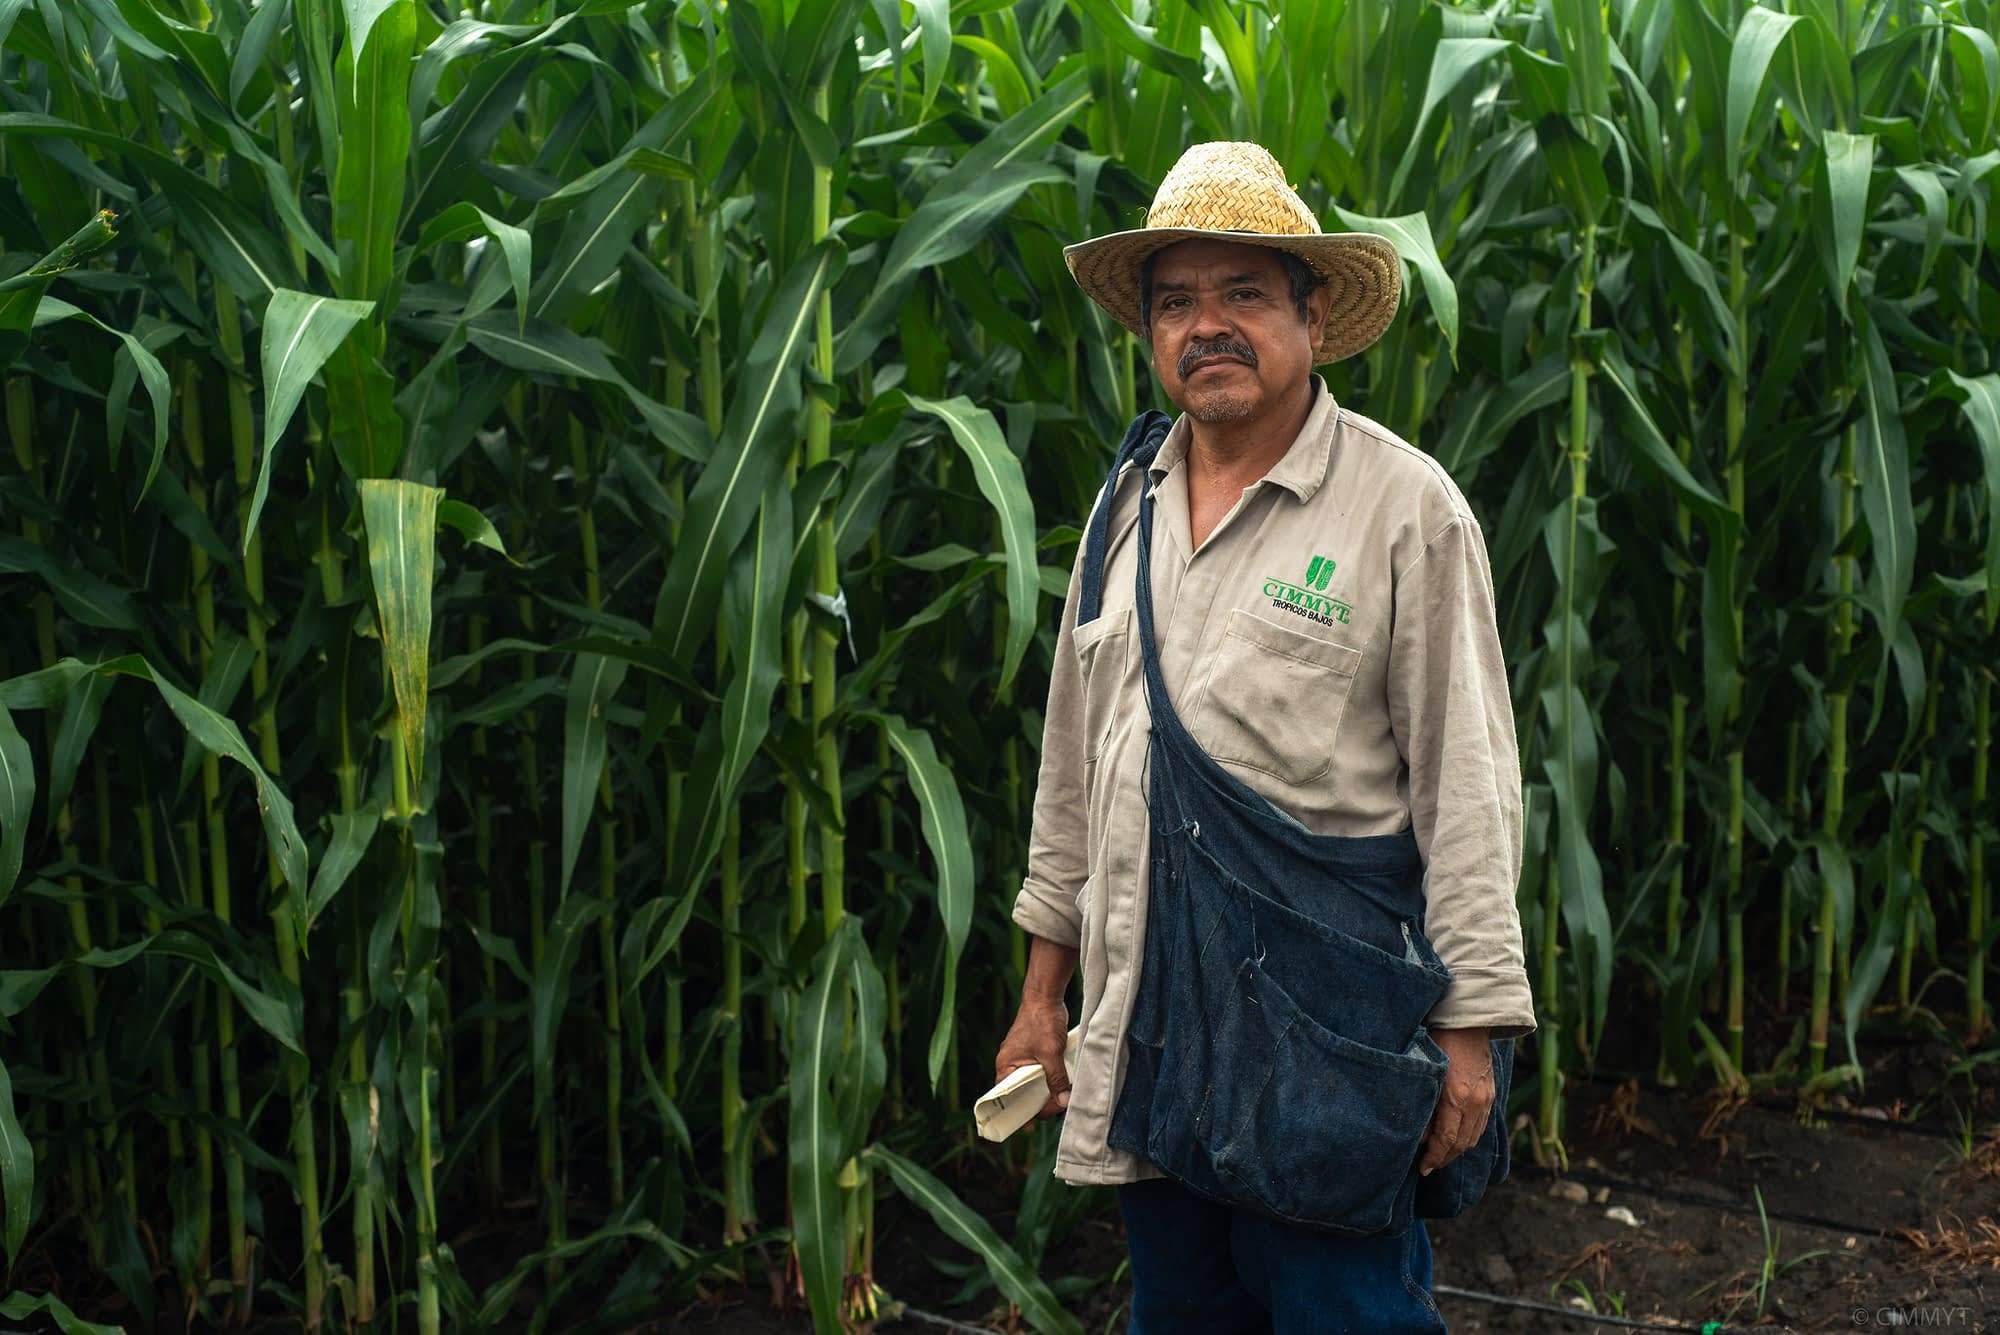 Field worker bagging maize ears at CIMMYT's Agua Fría experimental station. (Photo: CIMMYT/Alfonso Cortés)